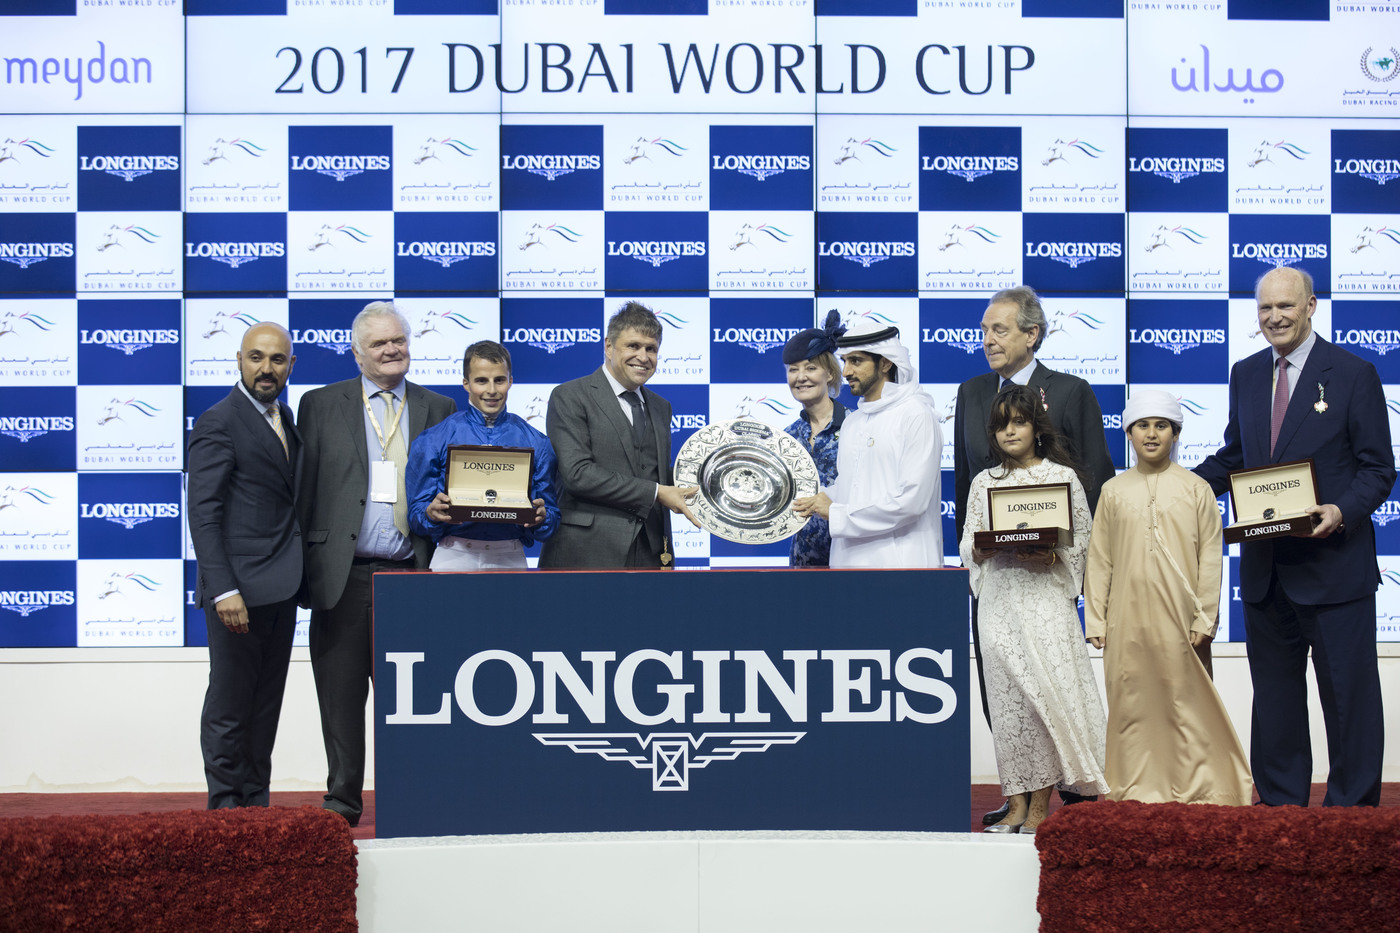 Longines Flat Racing Event: Arrogate, the 2016 Longines World's Best Racehorse, won the Dubai World Cup 7